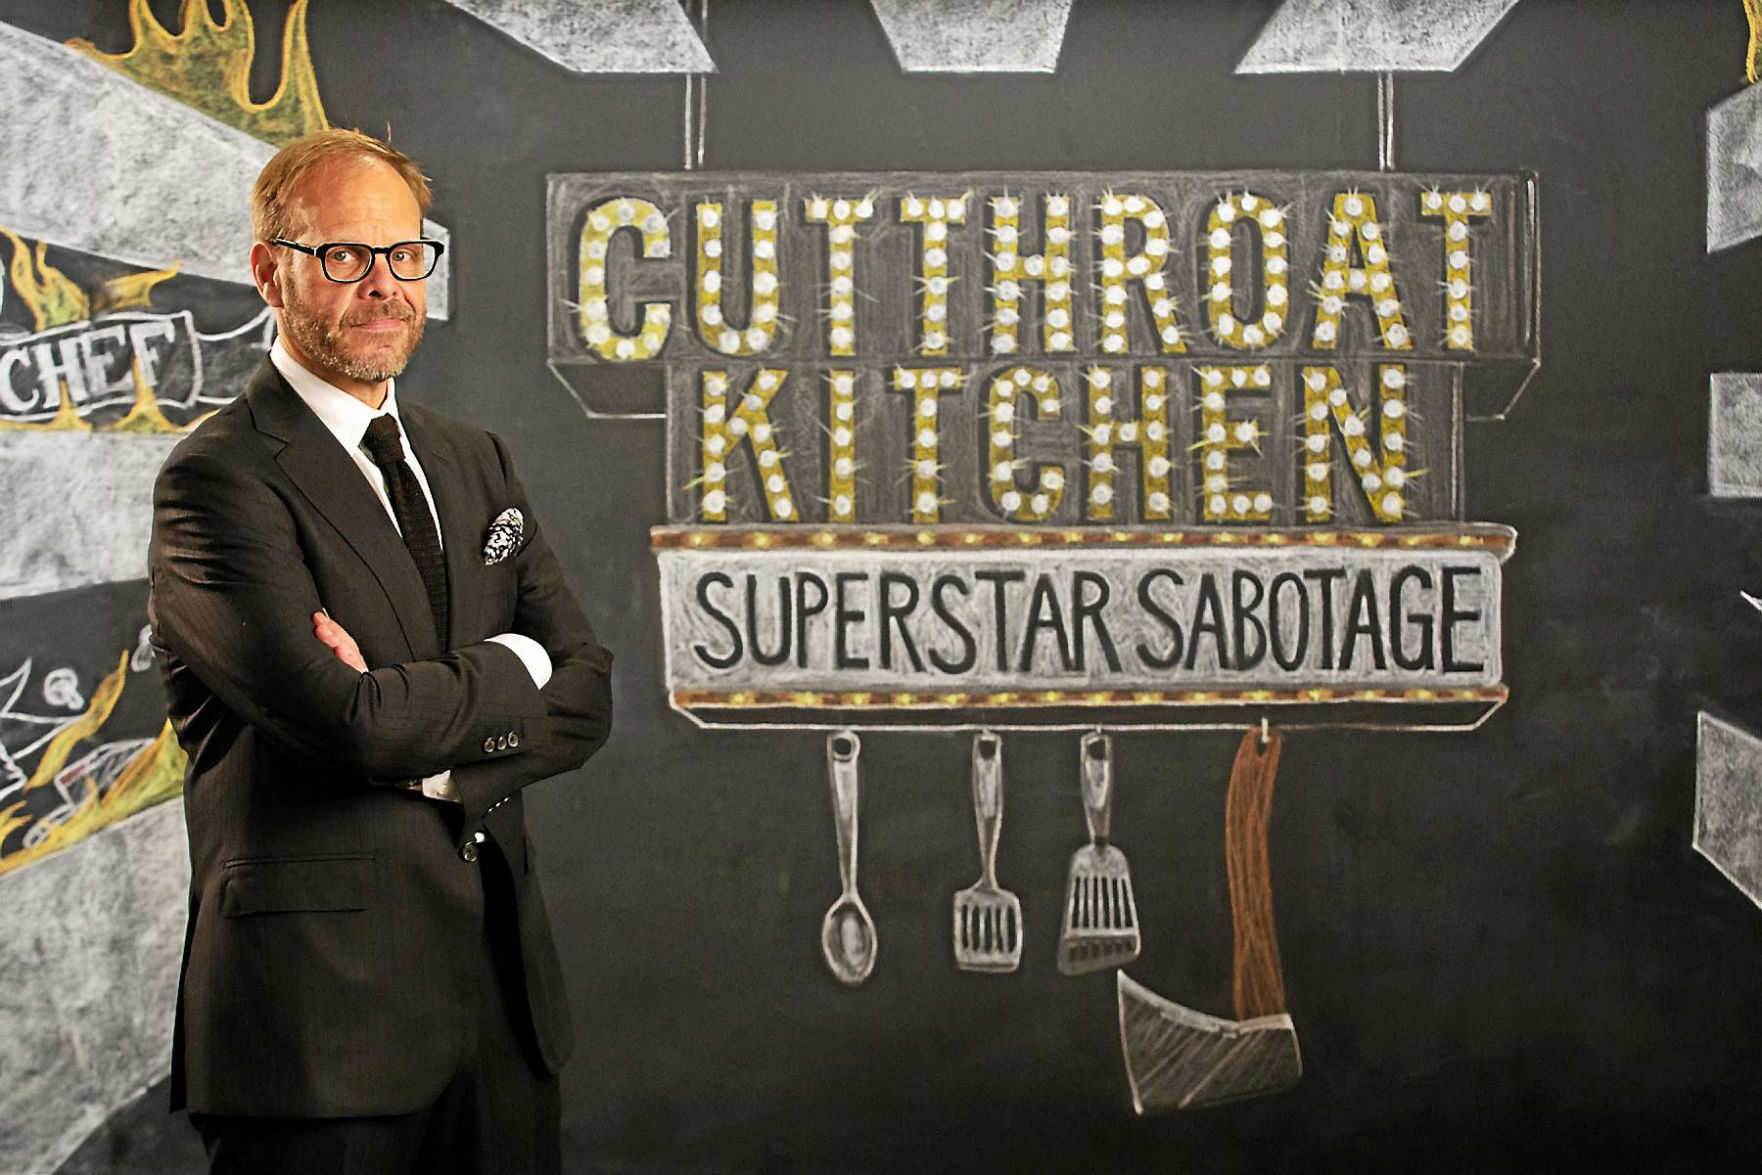 Oakland County Mother Wins Big On Food Network TV Show. Alton Brown, Host  Of Food Networku0027s Cutthroat Kitchen Superstar Sabotage